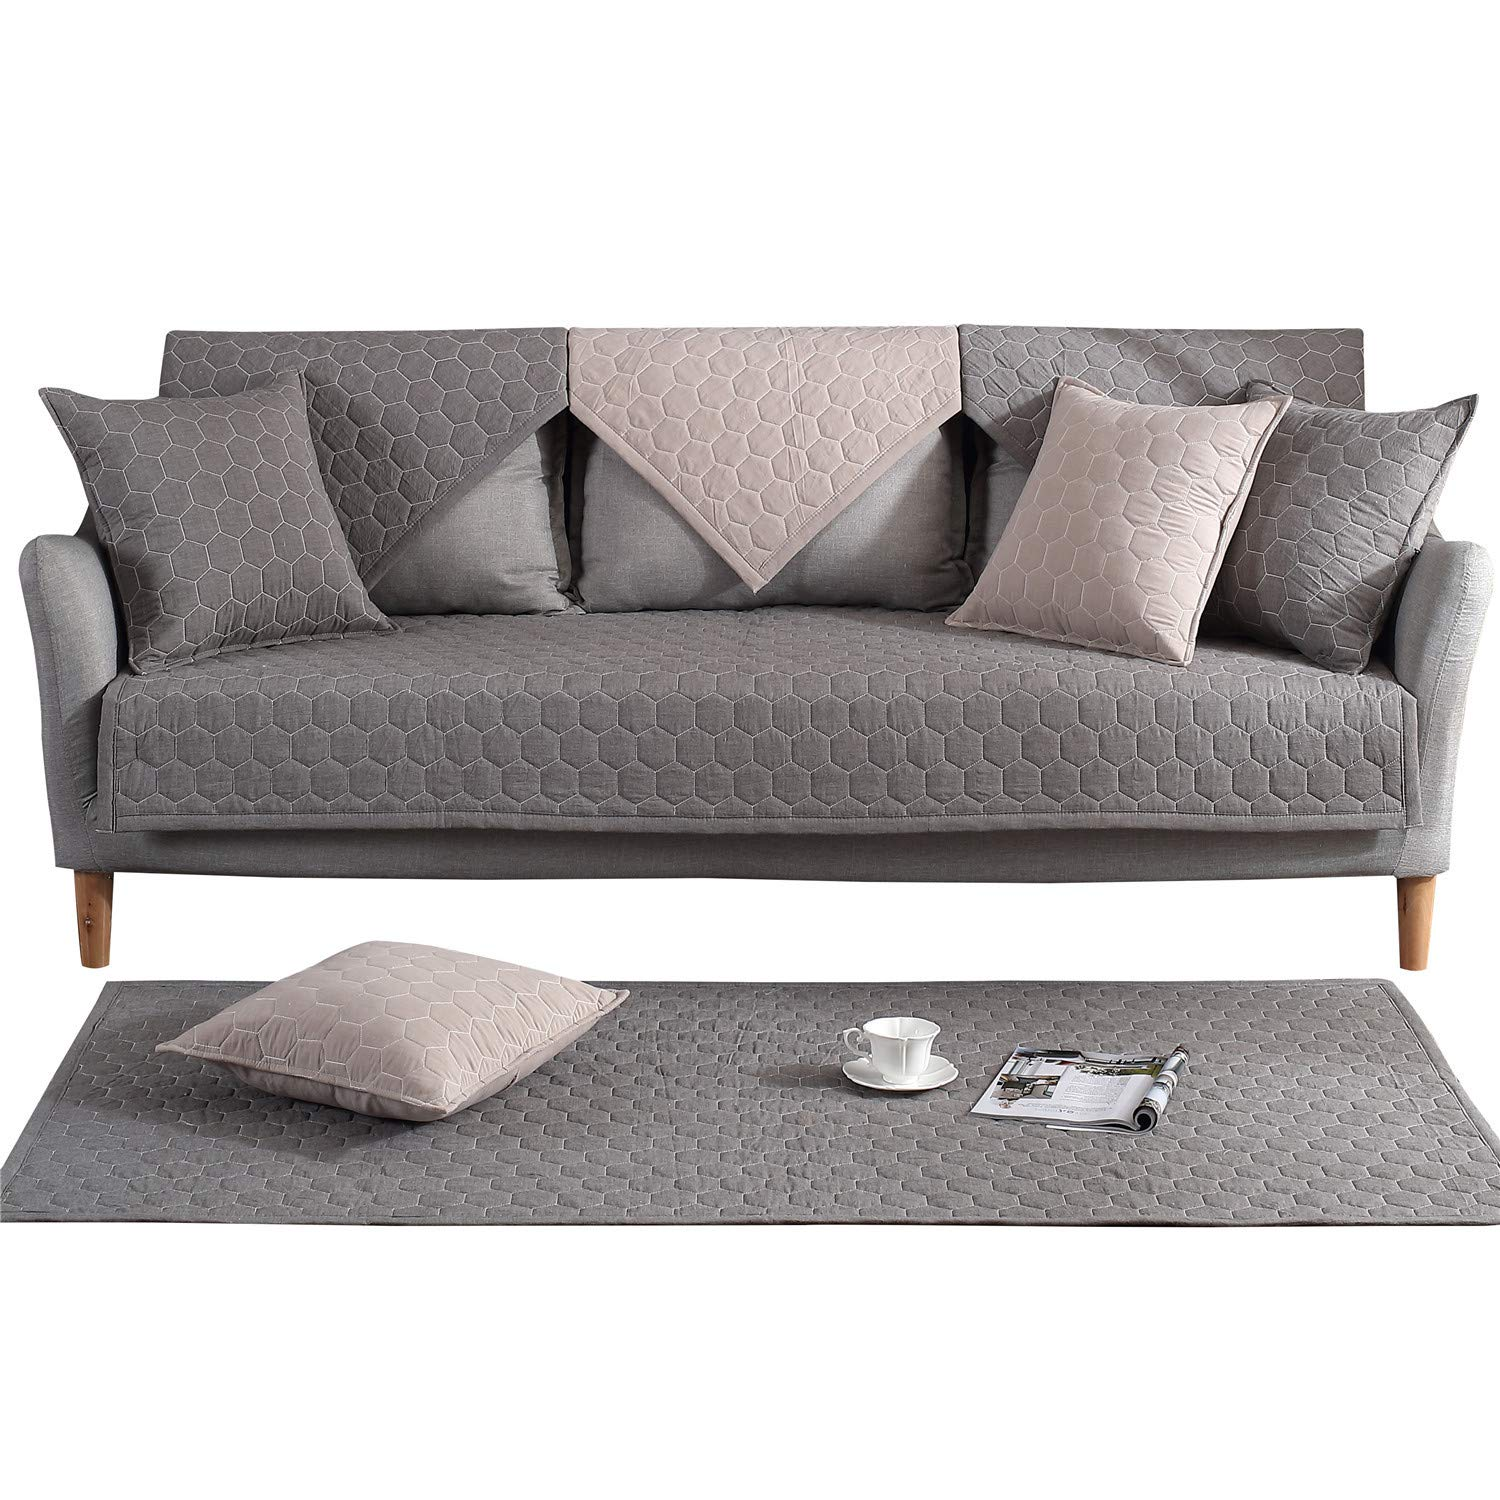 ostepdecor 100 %コットンキルト風ソファー家具プロテクターCouch Slipcoverペット犬の子キッズ 背もたれとアームレストSold Separately 36